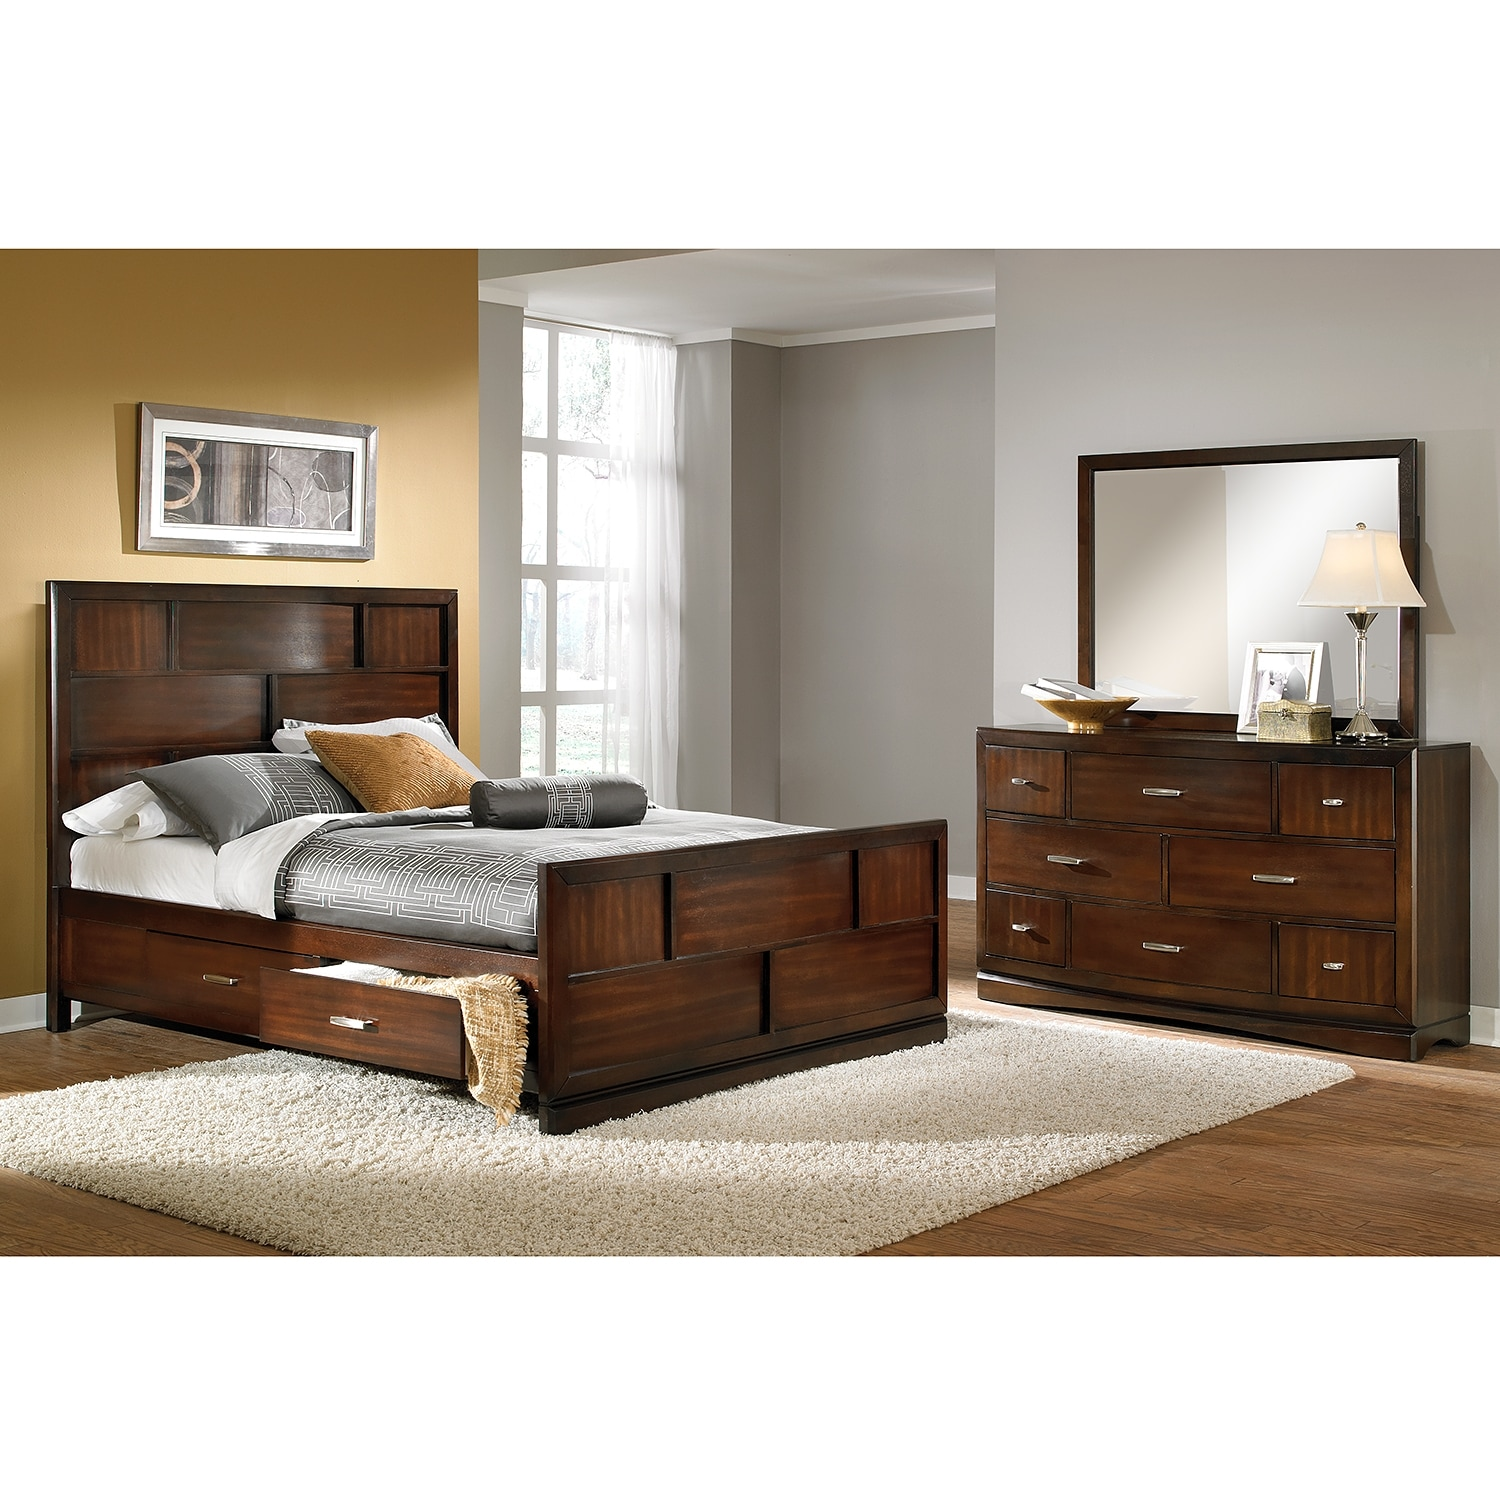 Bedroom Set Furniture ~ Toronto piece king storage bedroom set pecan